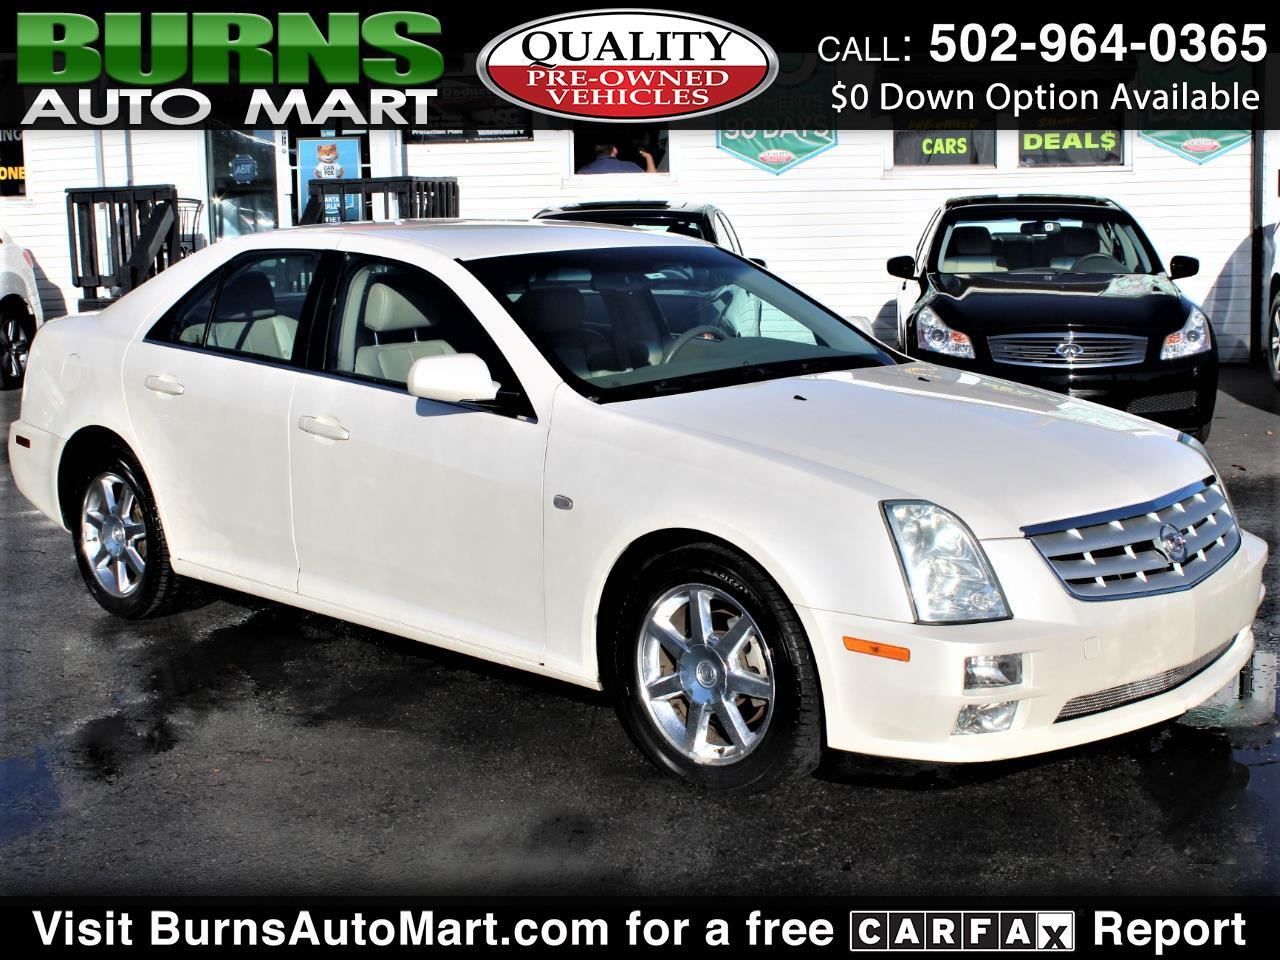 Cadillac STS V8 Premium Luxury Performance 2005